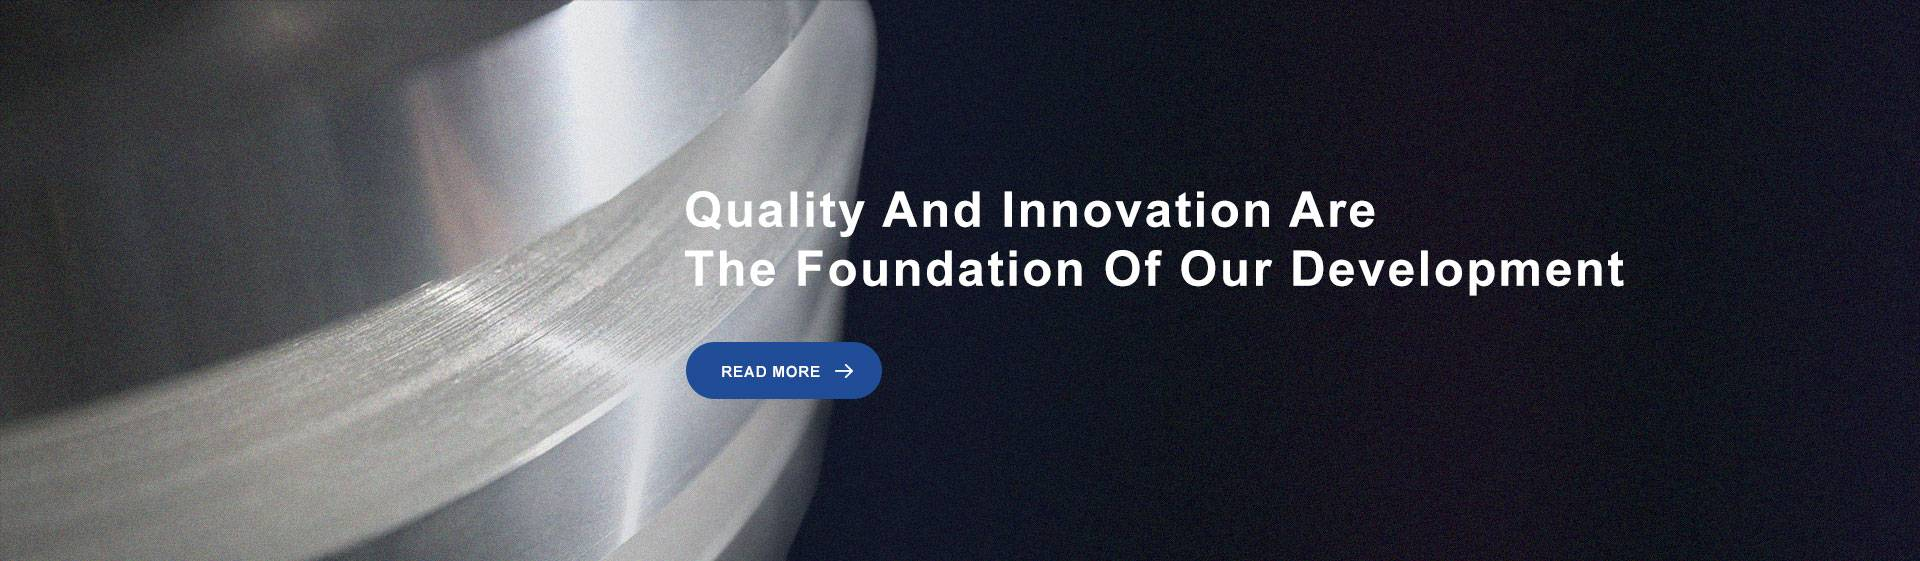 Quality And Innovation Are  The Foundation Of Our Development